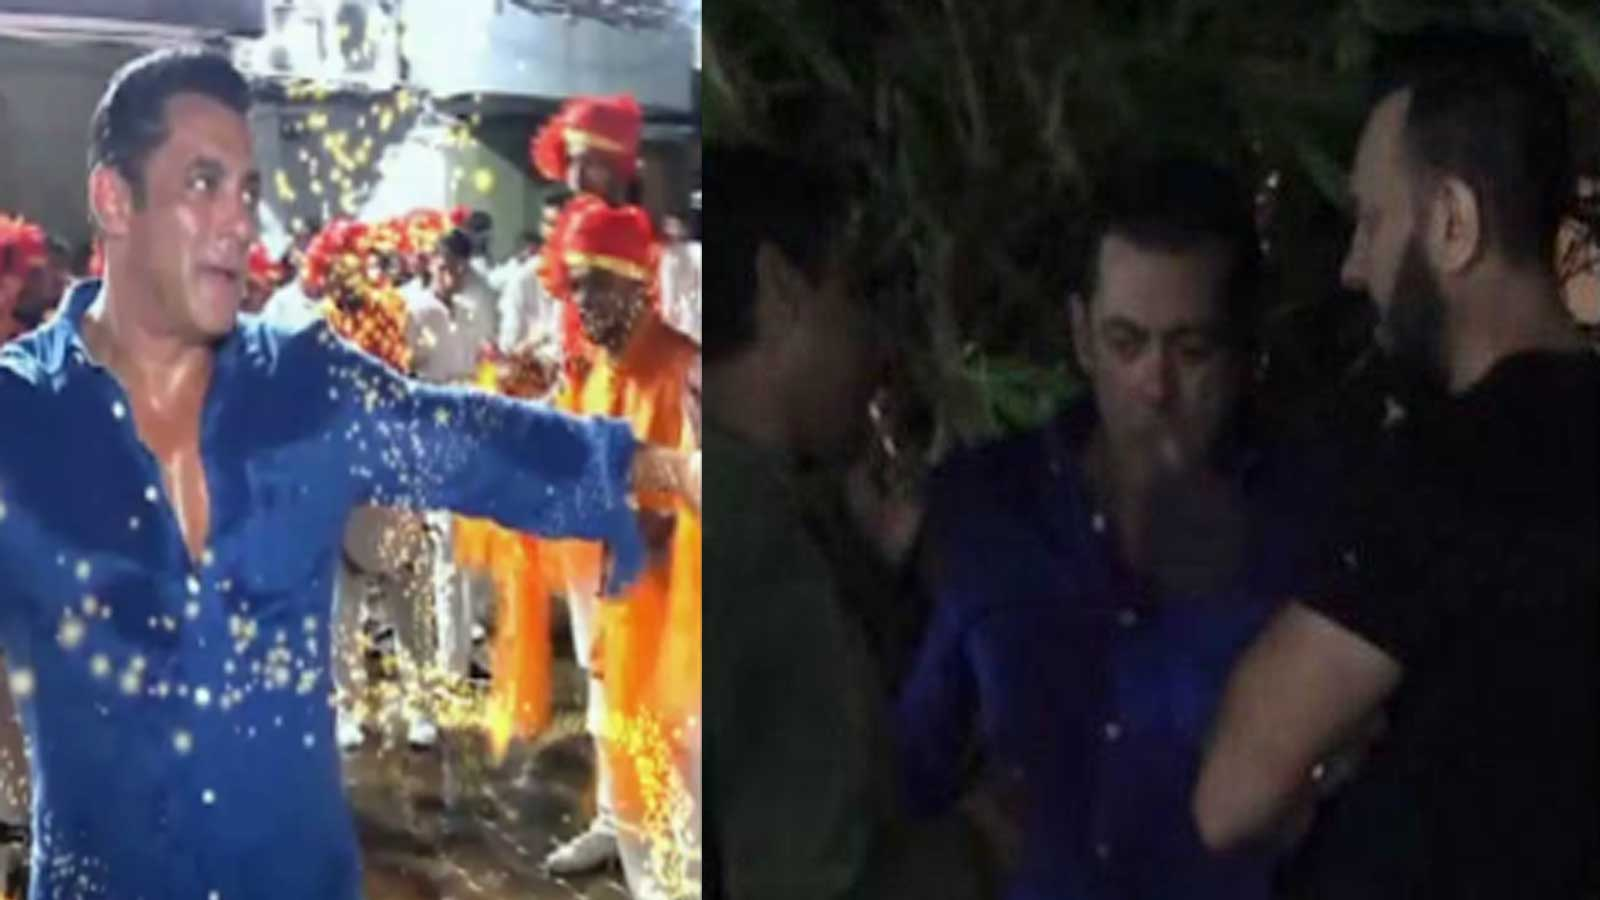 Salman Khan caught smoking at Ganpati Utsav, fans get upset